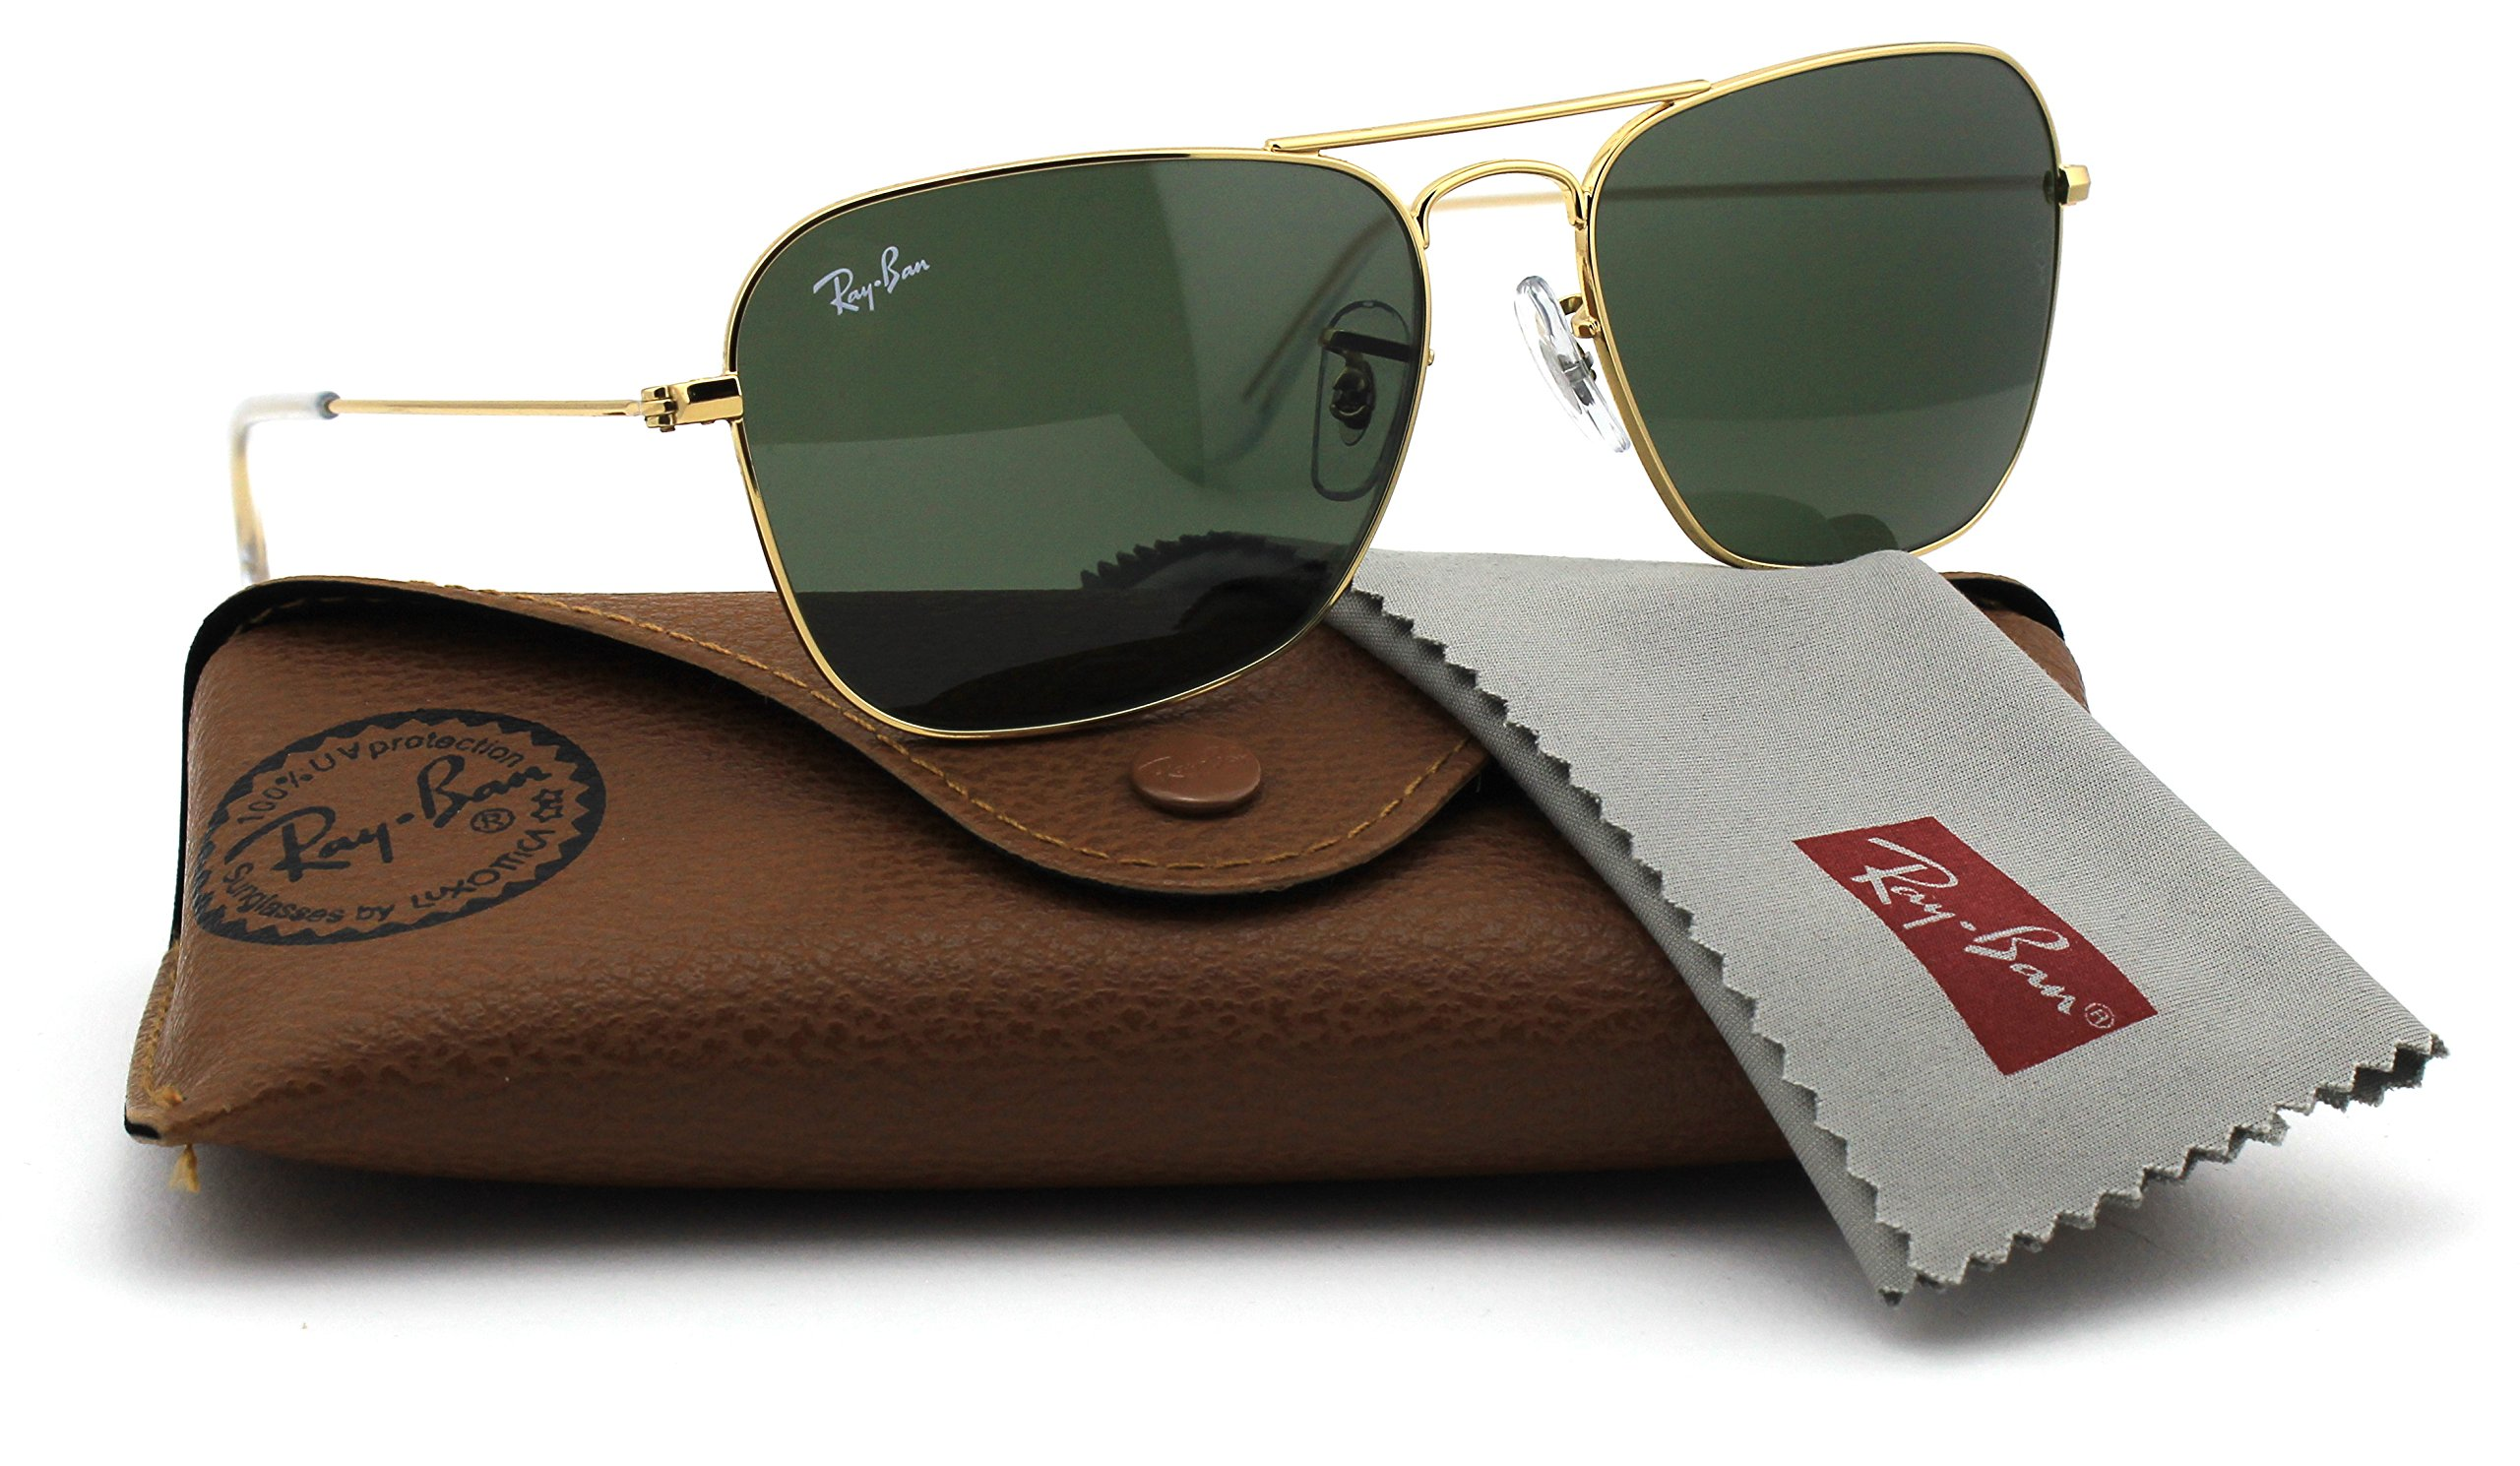 Ray-Ban RB3136 001 Caravan Sunglasses Gold Frame / Green Classic Lens 55mm